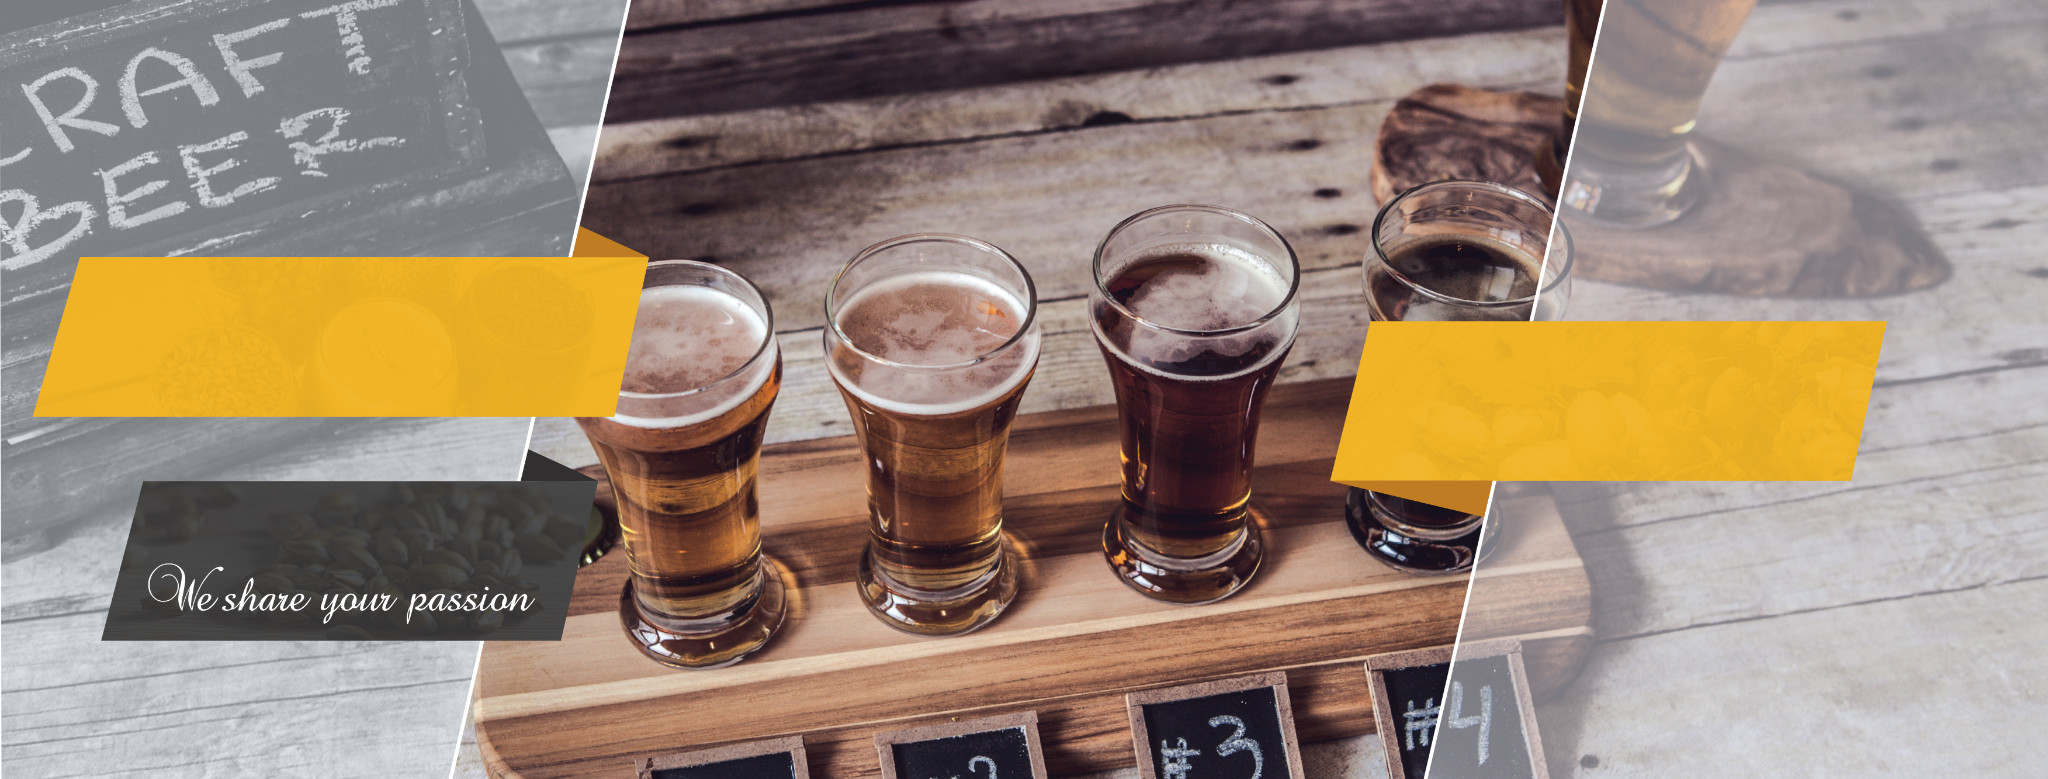 Beer Enthusiast header image